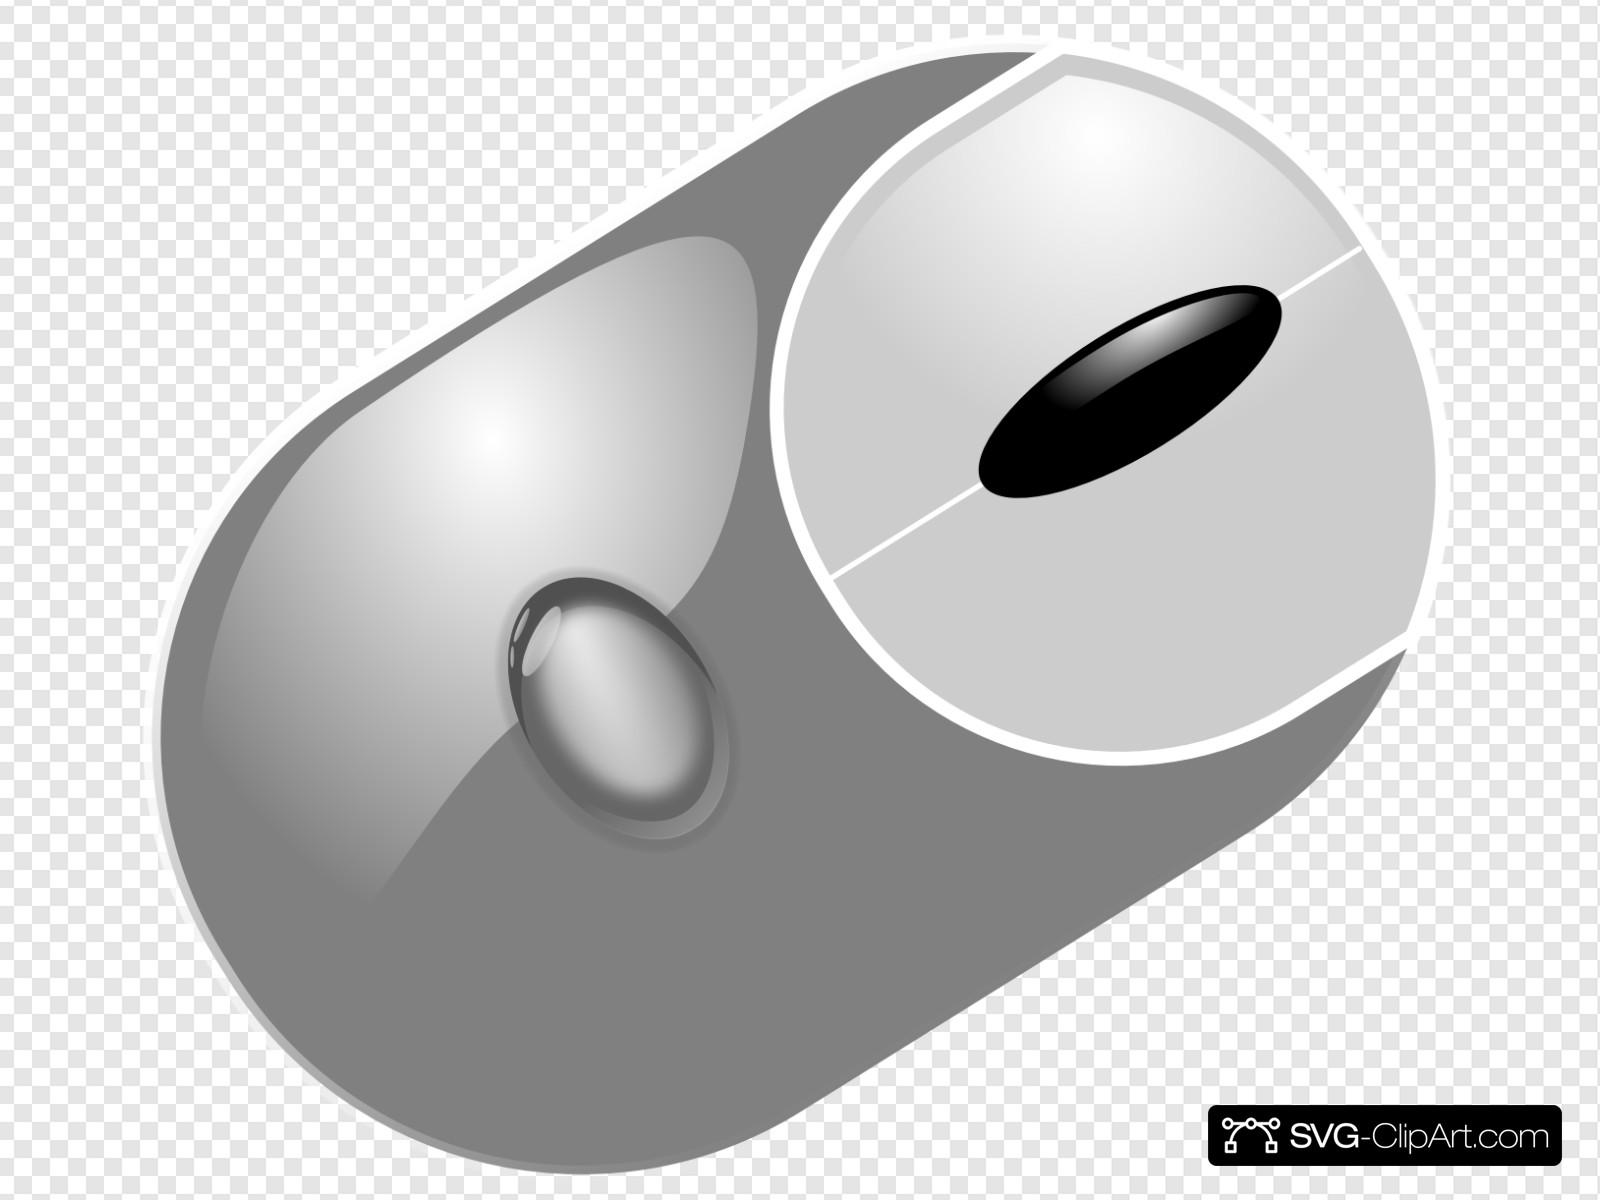 Computer Mouse Clip art, Icon and SVG.